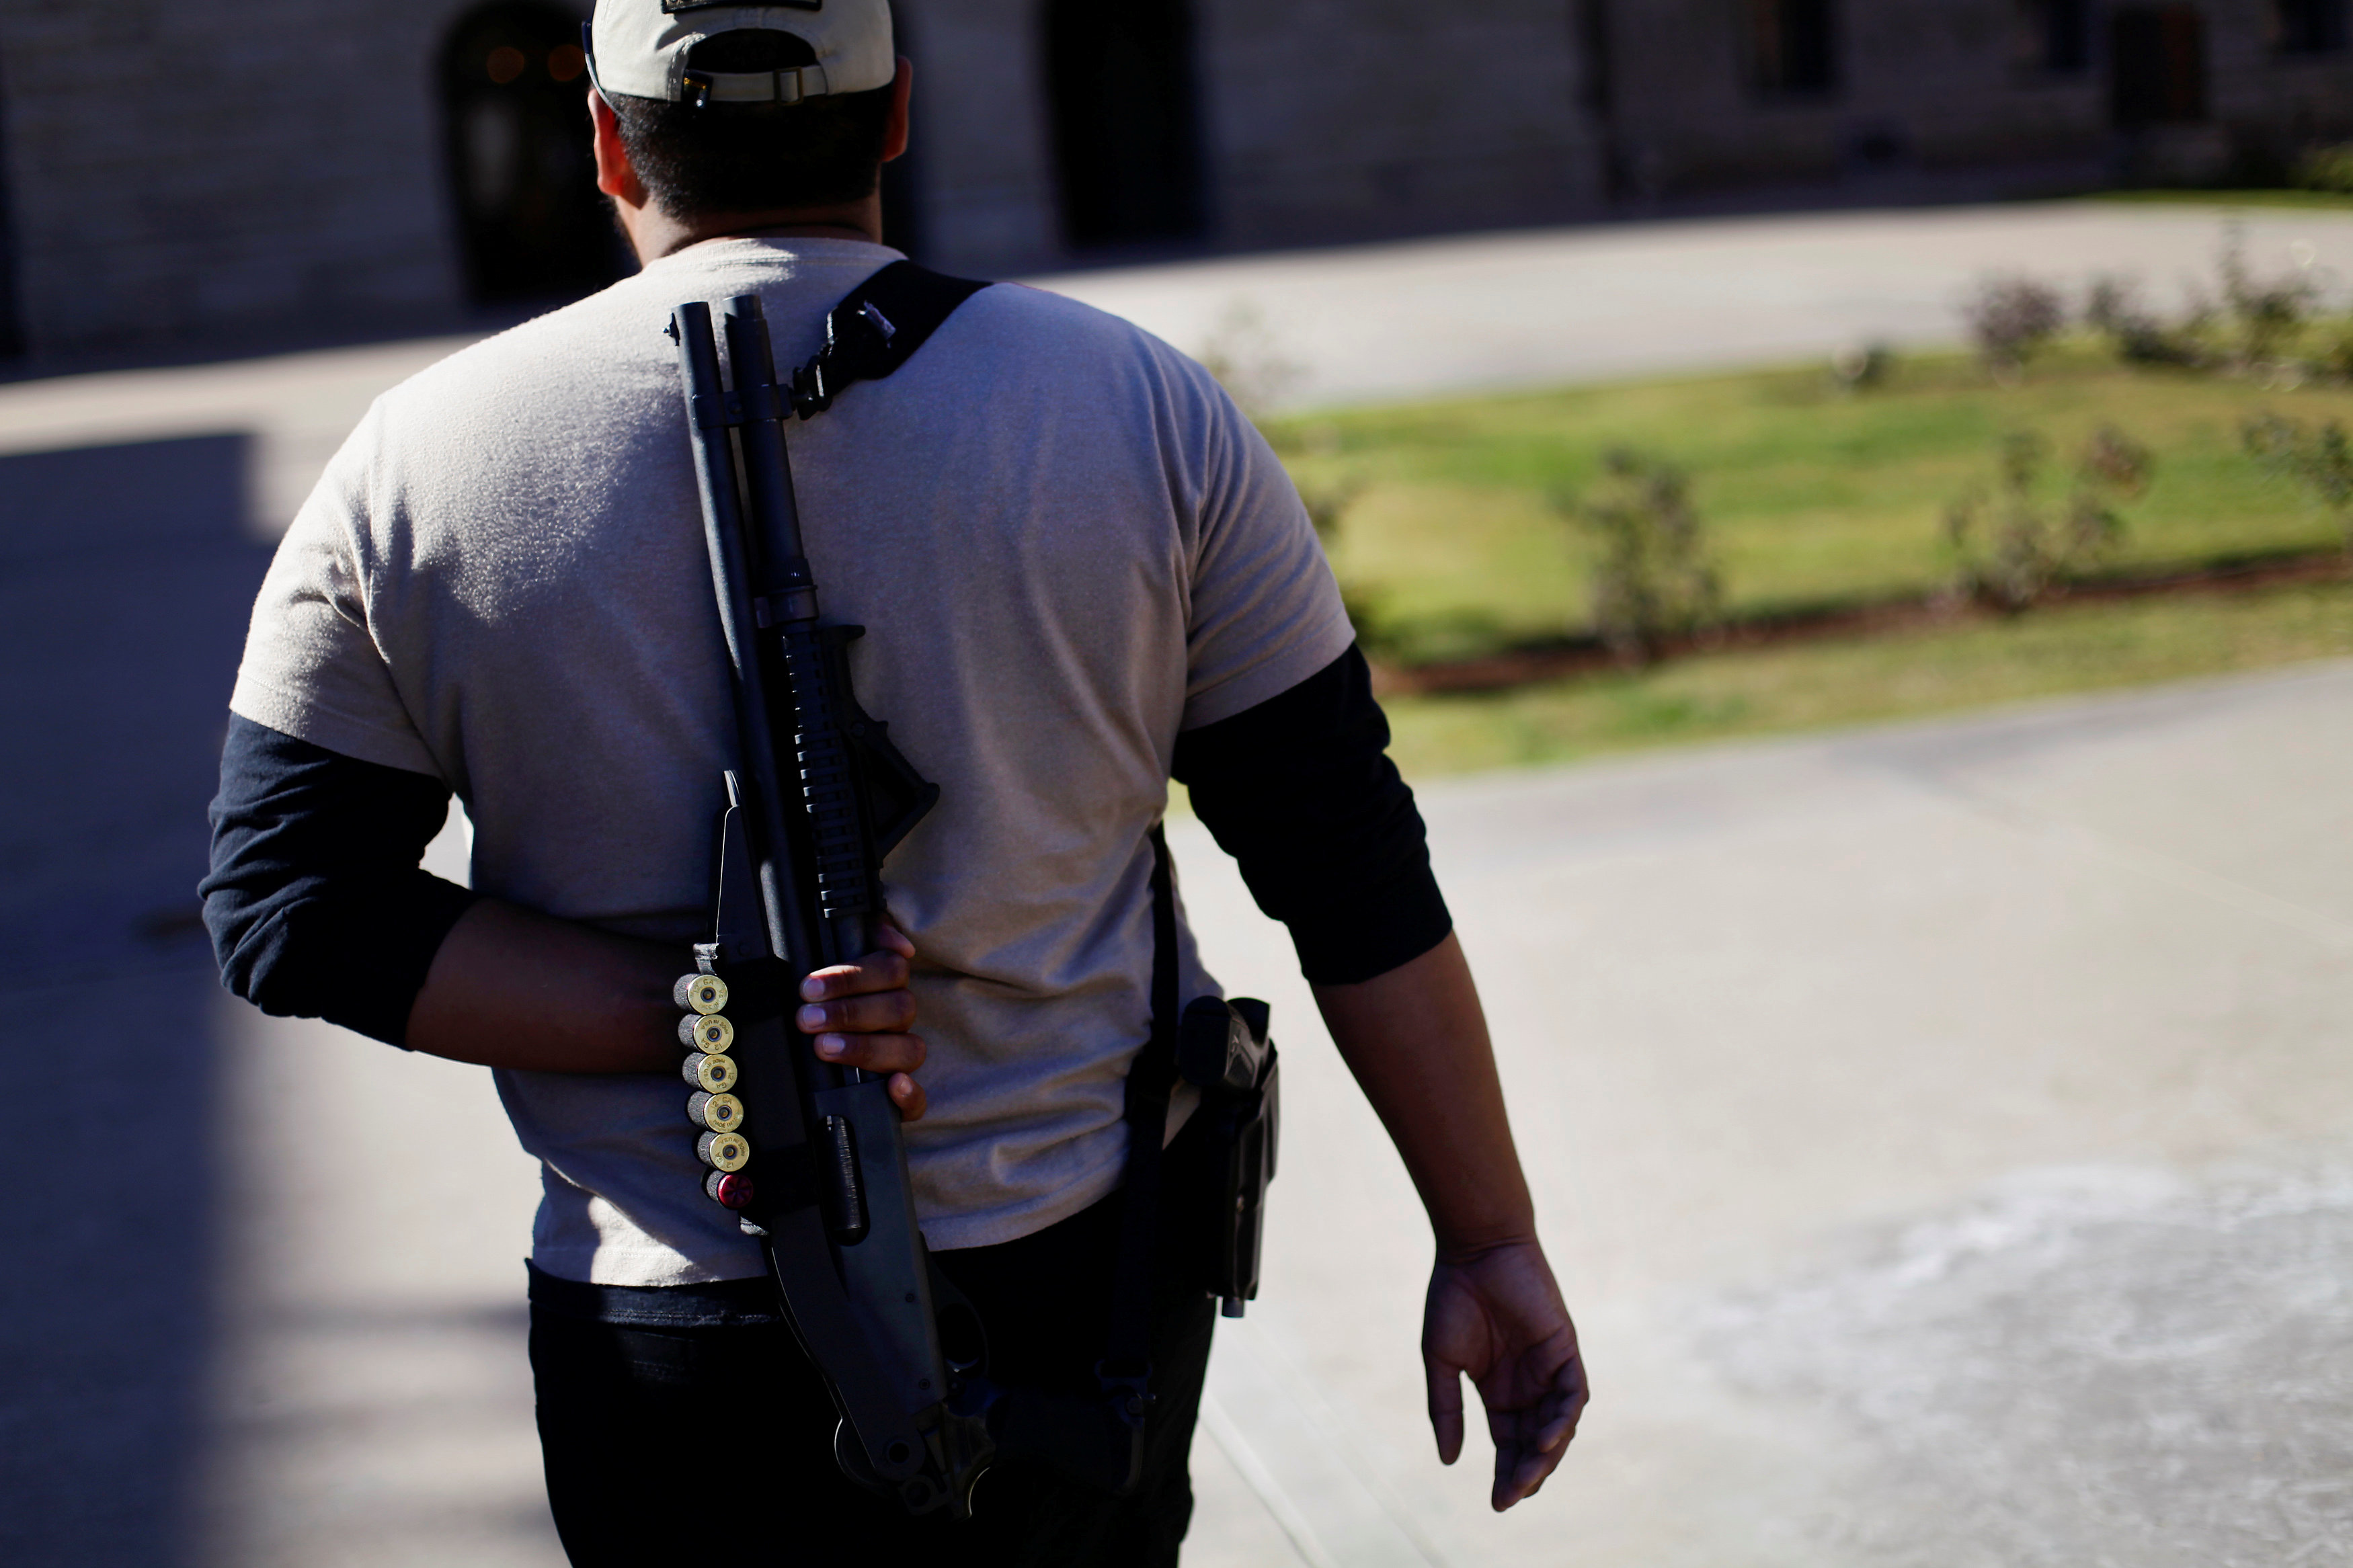 FILE PHOTO: A man walks with his Remington 870 Express 12 gauge shotgun during a pro-gun and Second Amendment protest outside the Arizona State Capitol in Phoenix, Arizona, U.S., January 19, 2013. REUTERS/Joshua Lott/File Photo